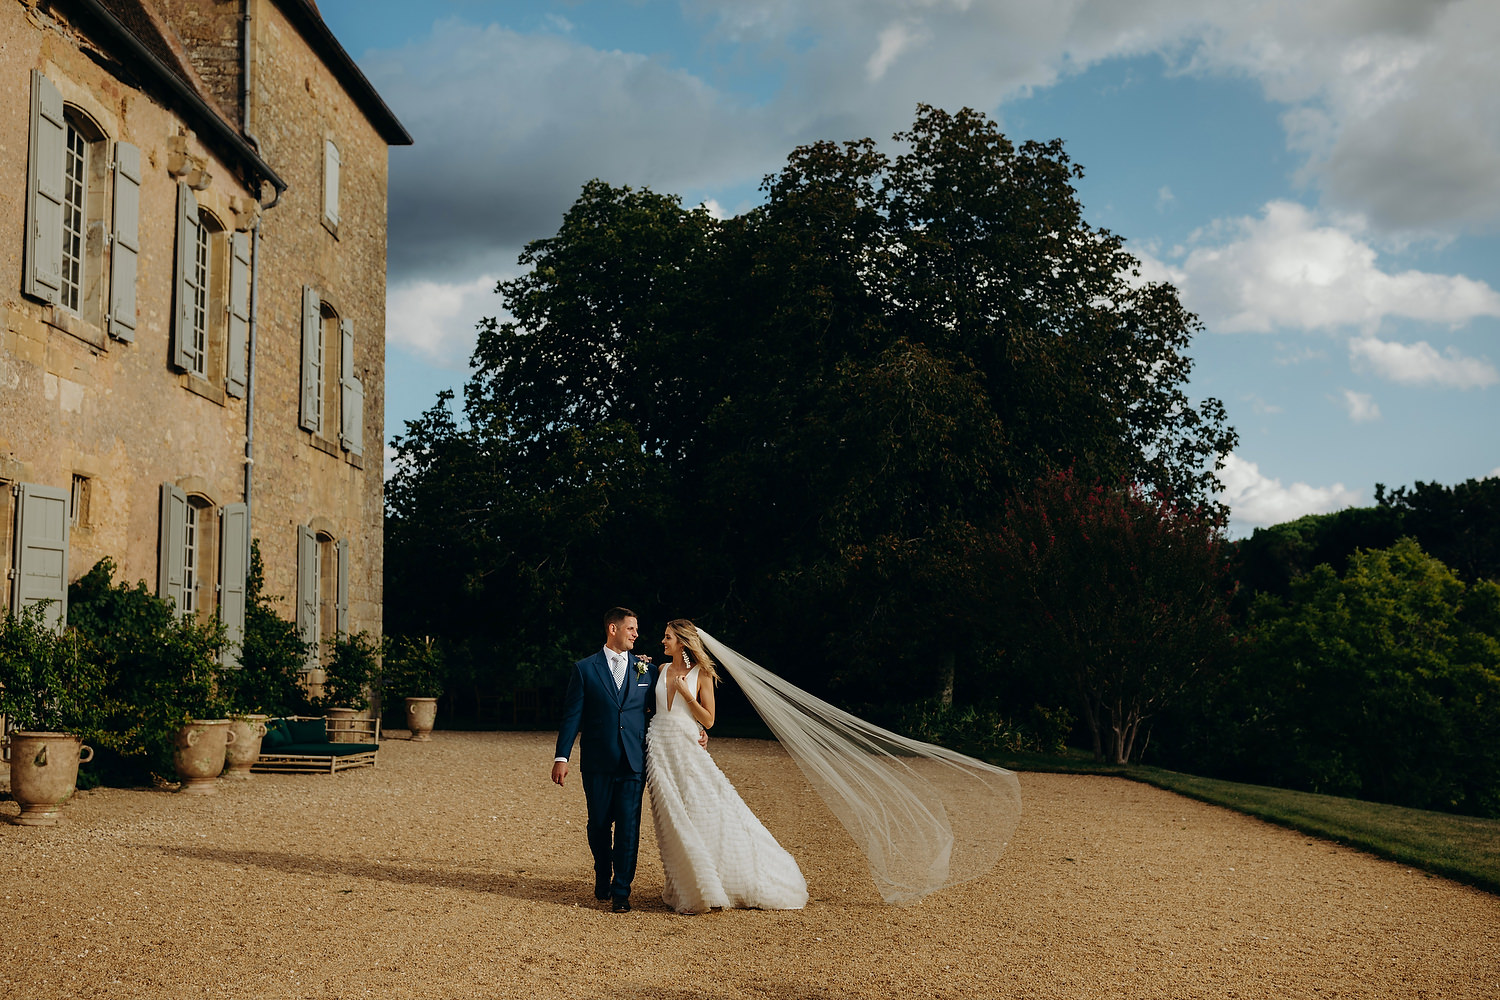 veil blowing in the wind as couple walk